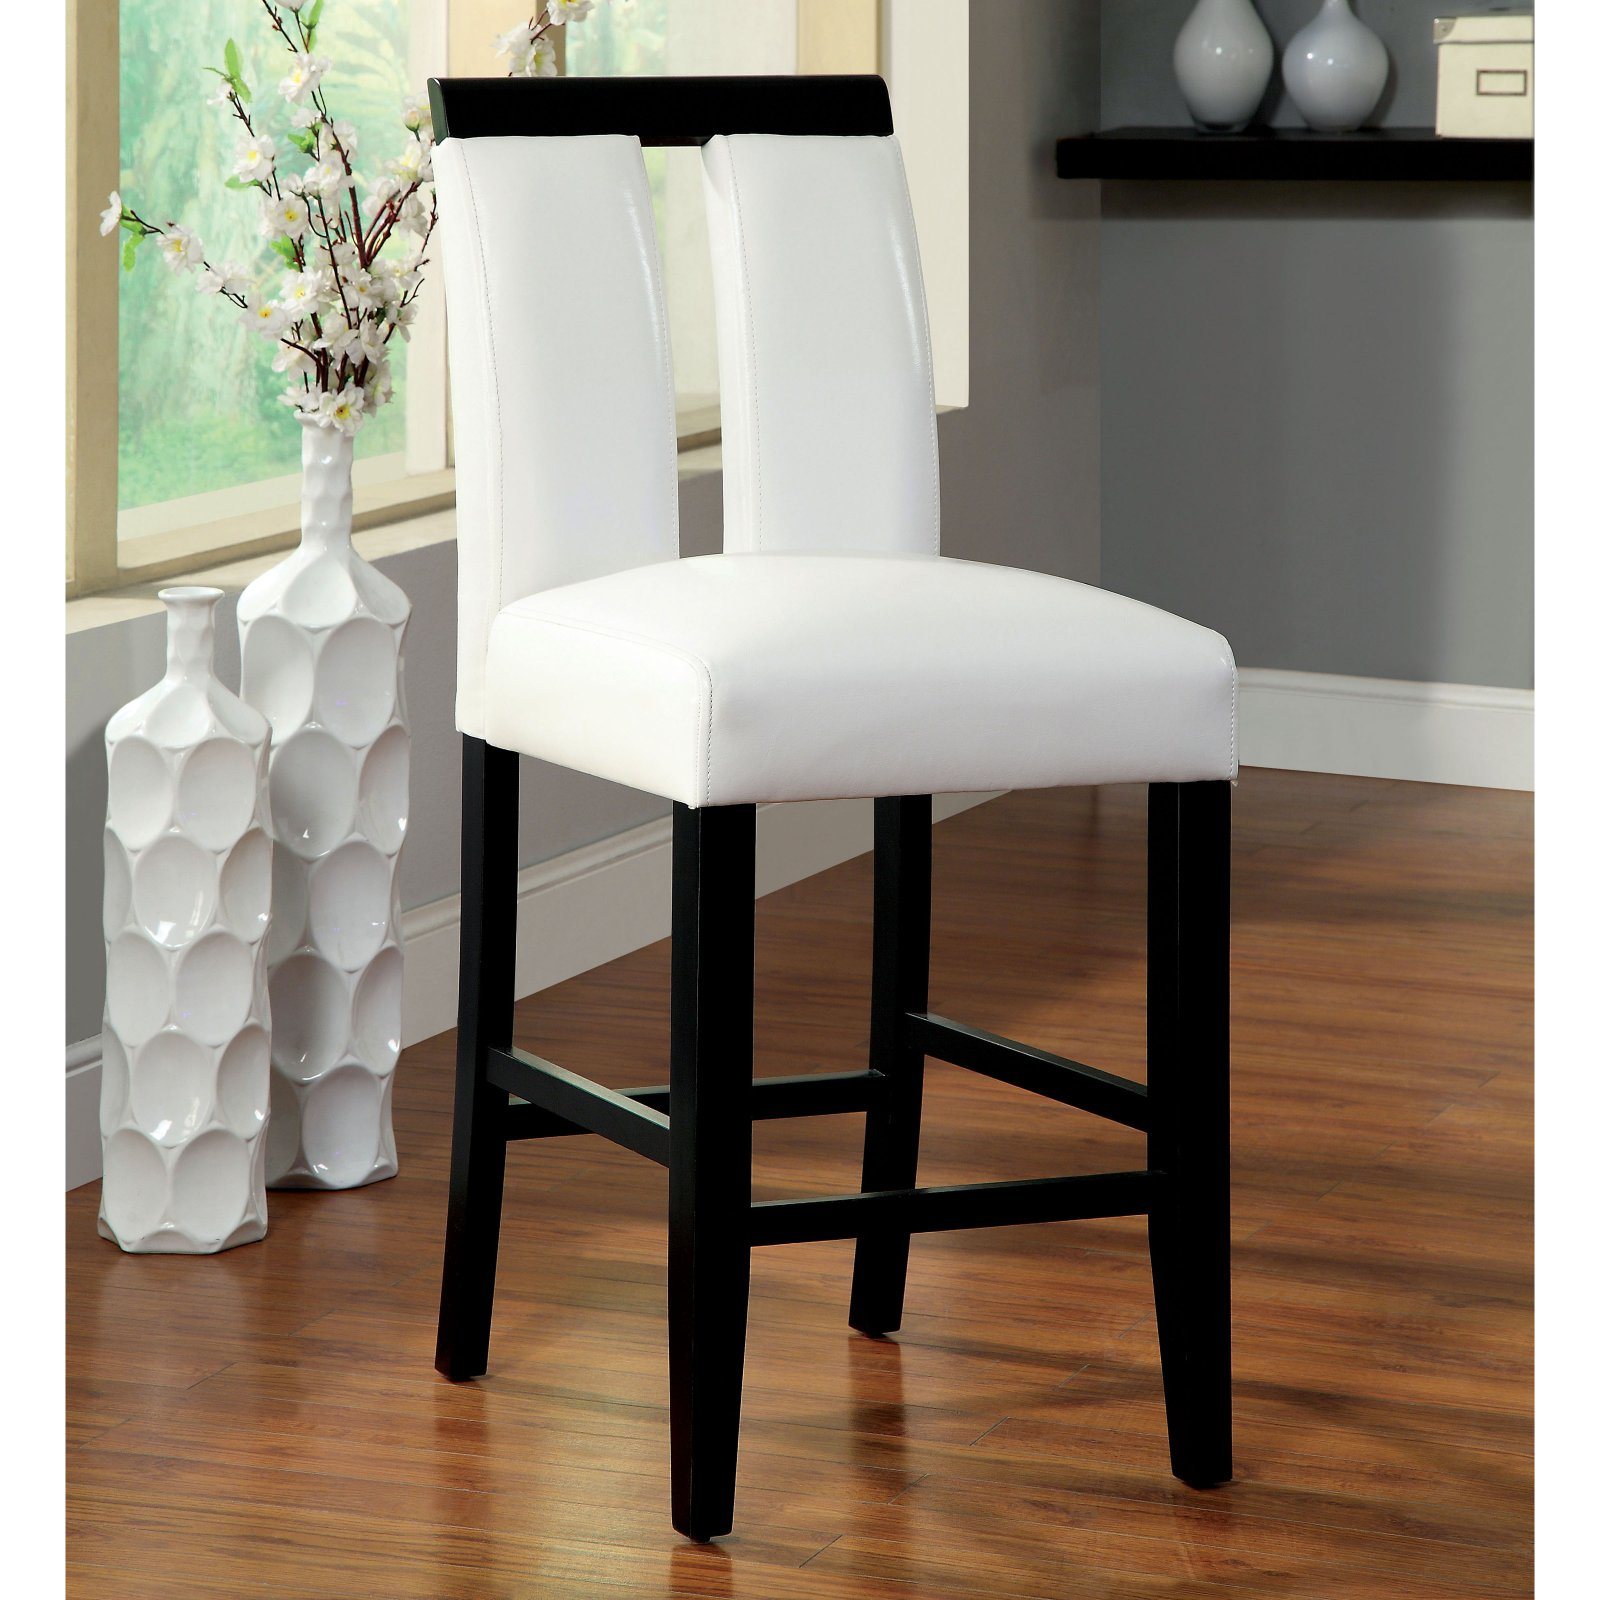 Etonnant Furniture Of America Luminate Contemporary Counter Height Chairs   Set Of 2